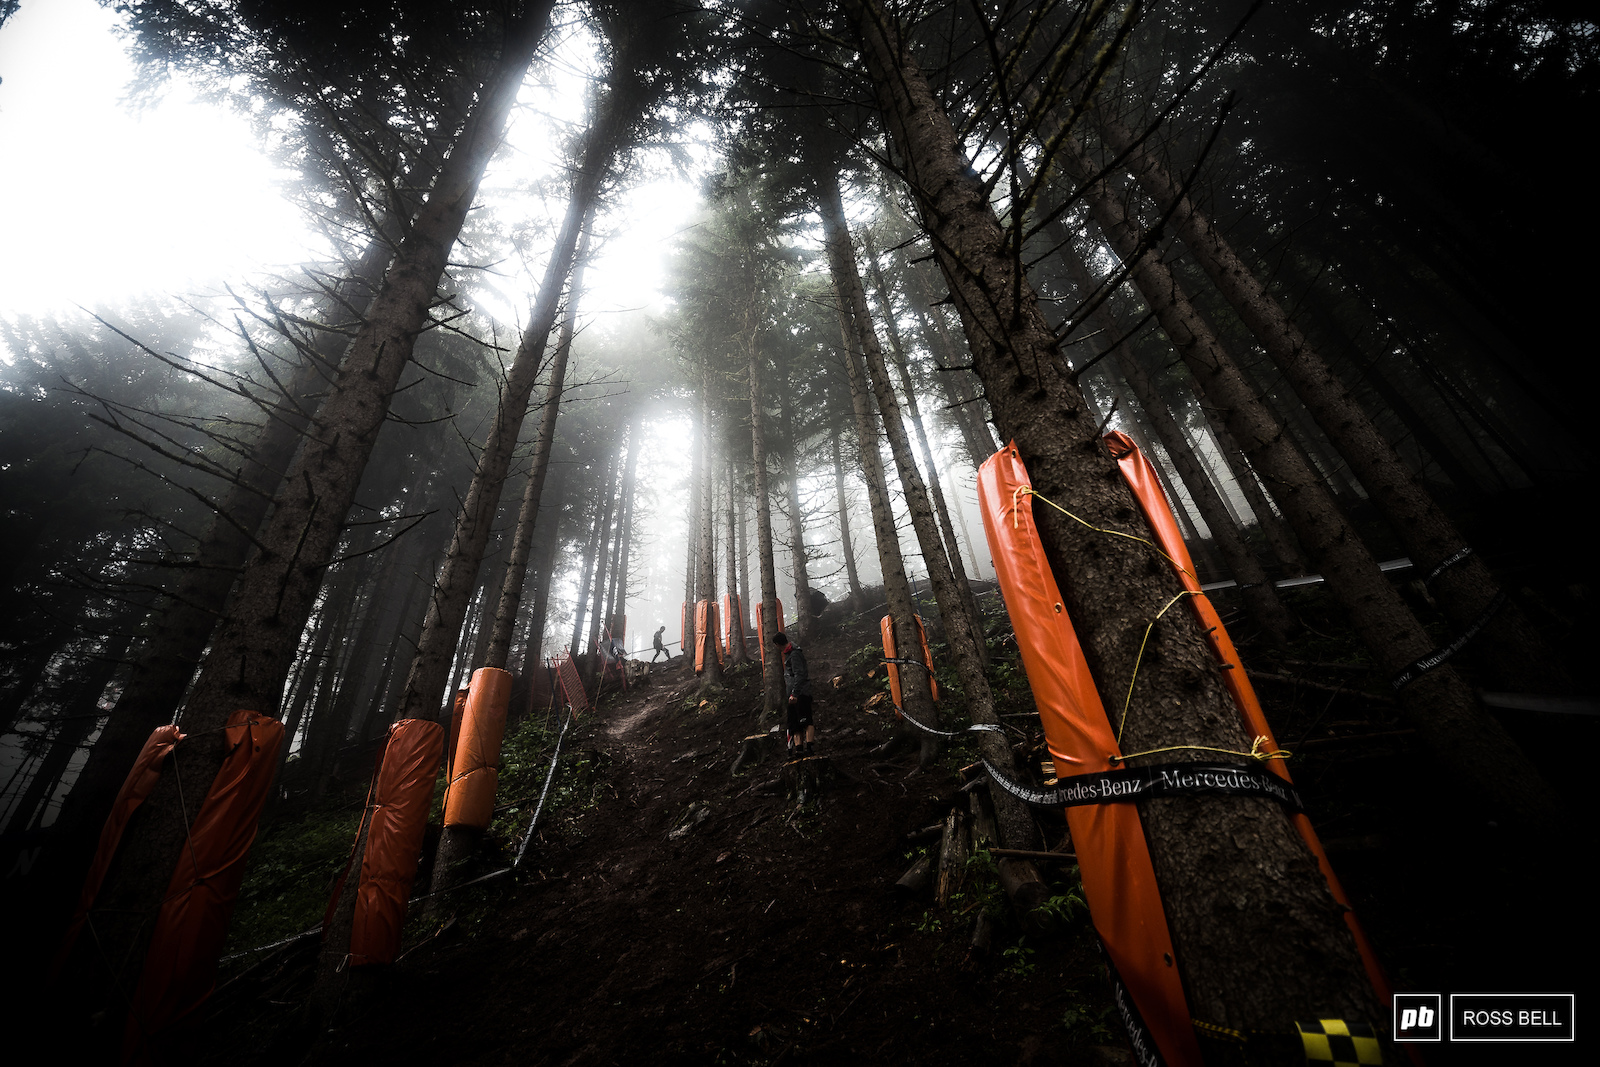 There s a fresh section in the woods which looks steep and super slick it ll be carnage in there tomorrow morning.